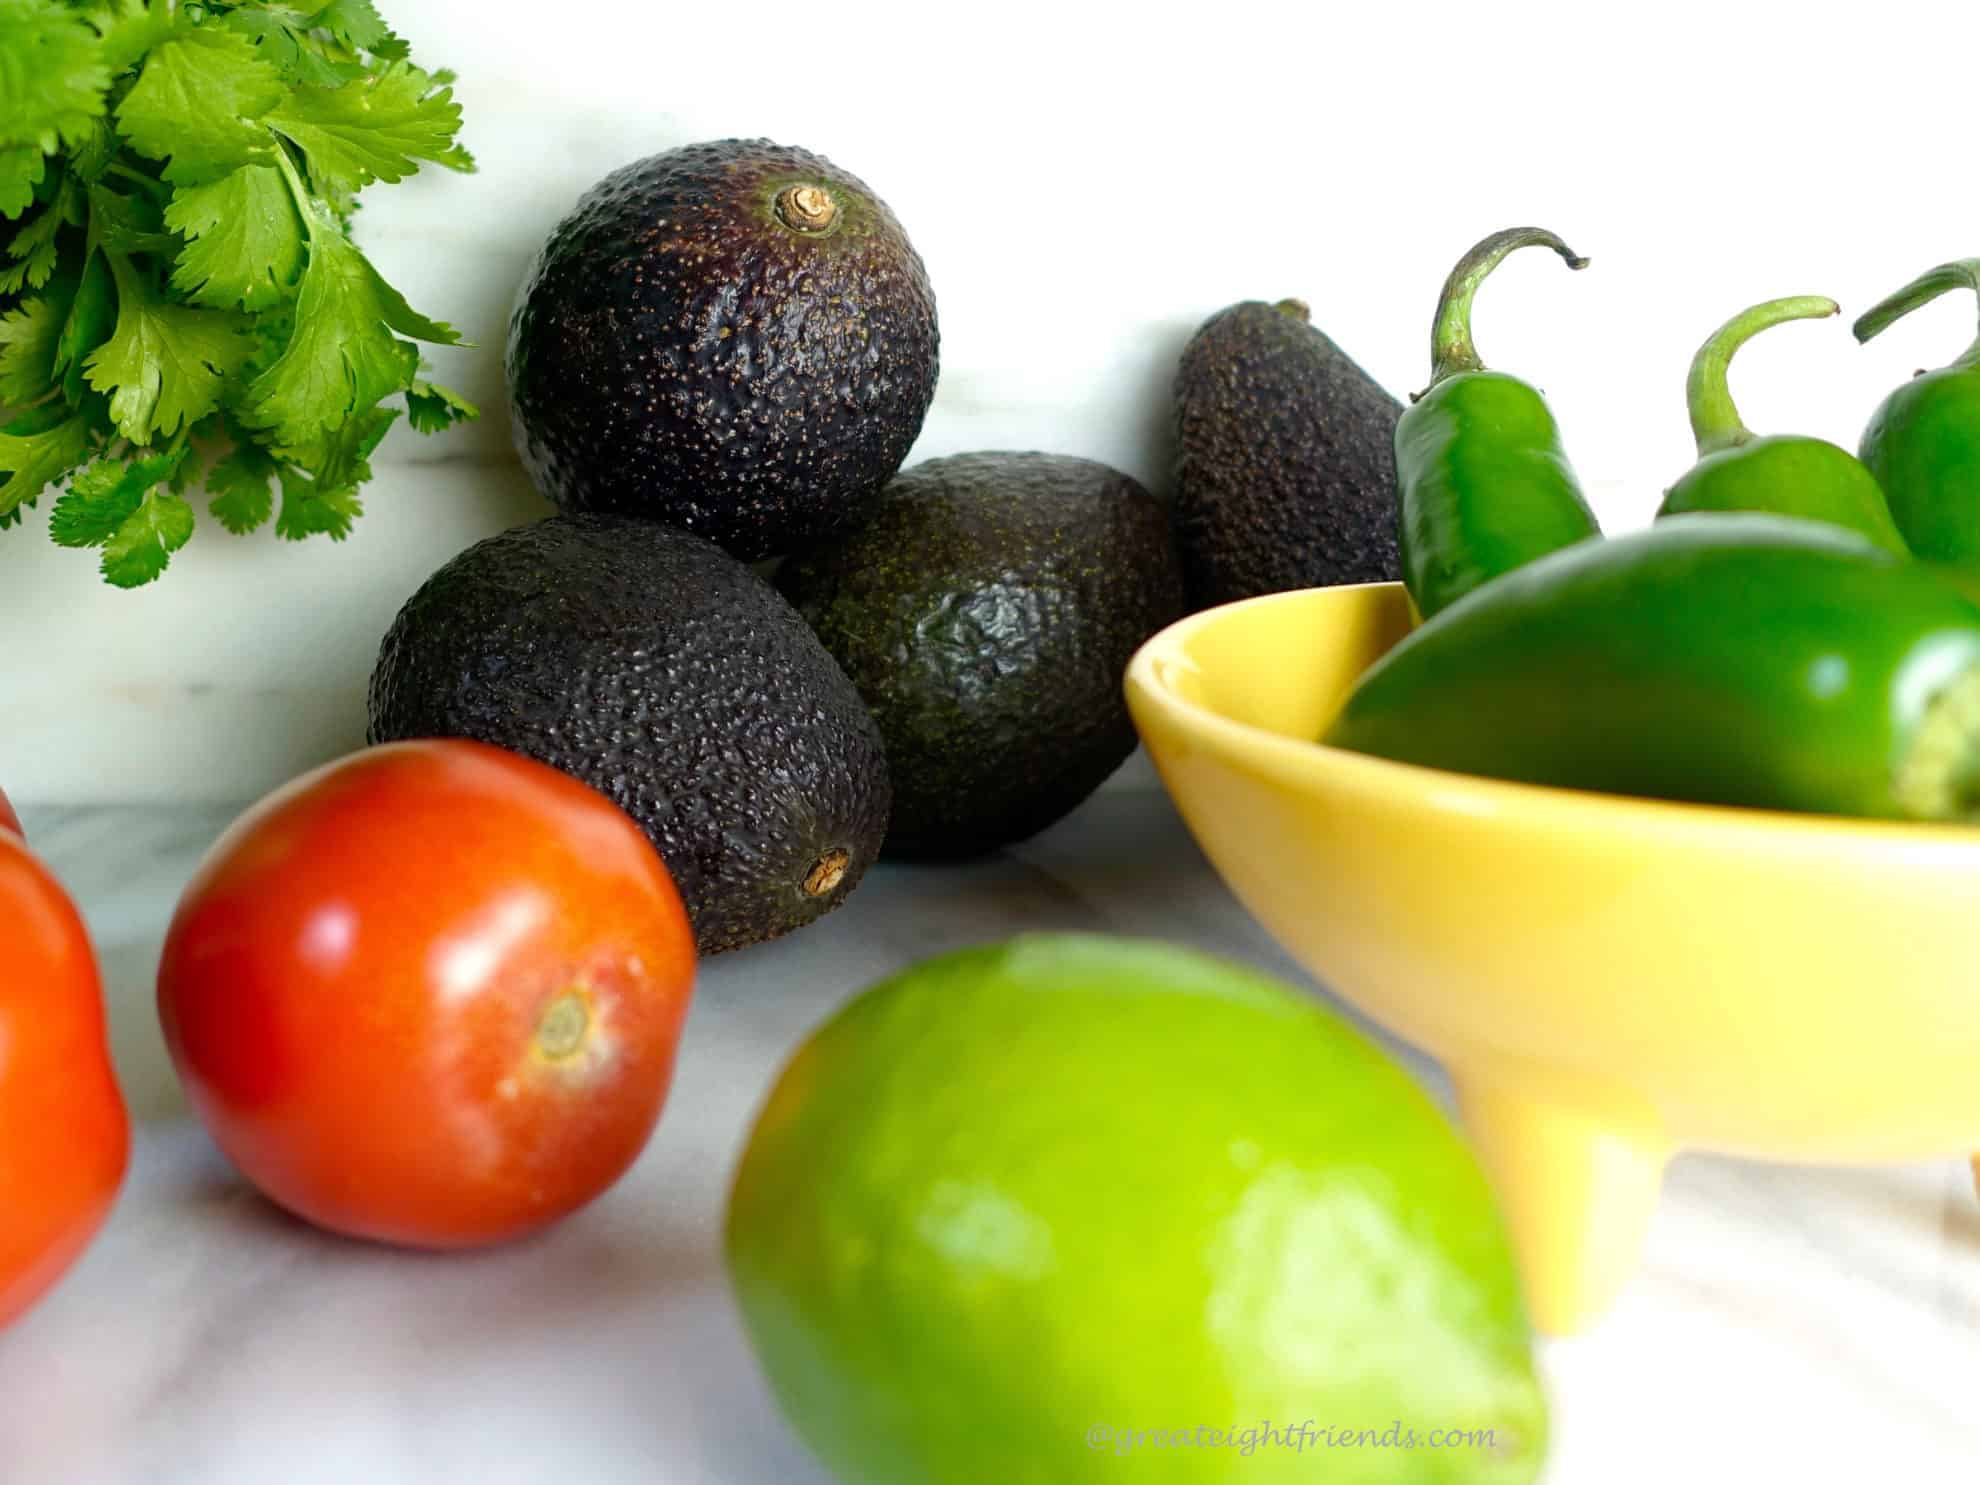 Avocados, cilantro, jalapenos in a yellow bowl, tomatoes and a lime.